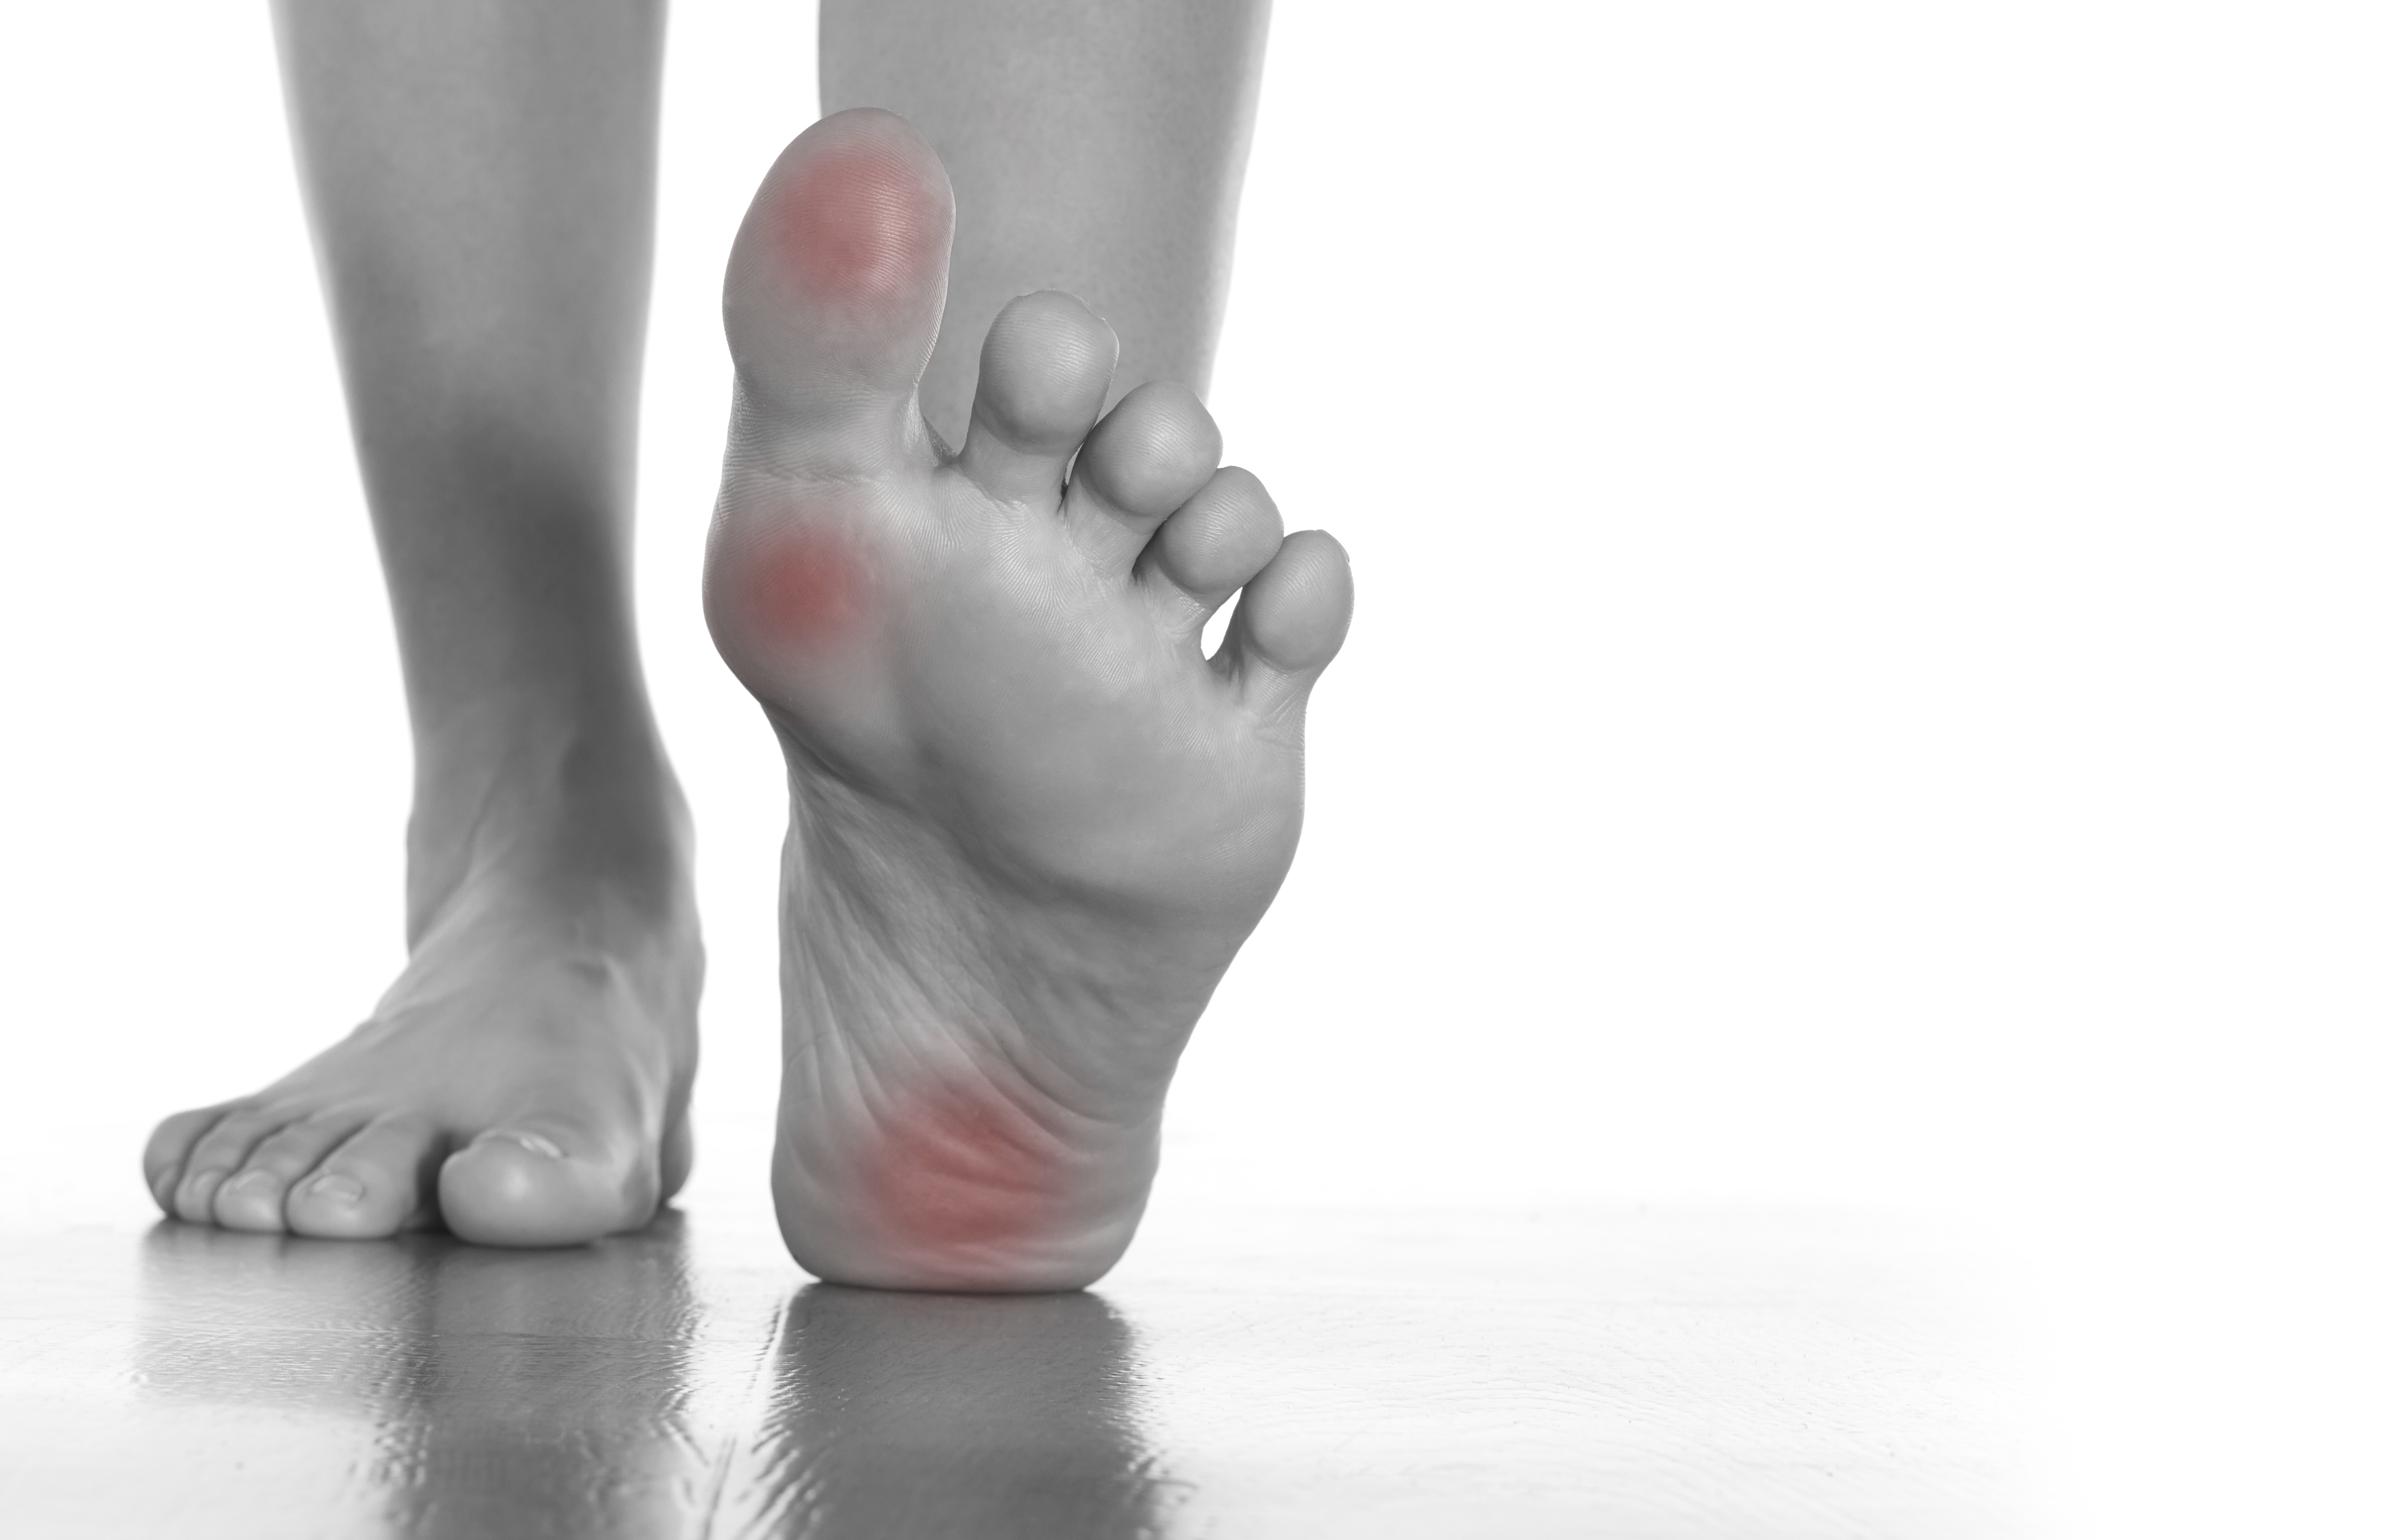 Basic Remedies to Chronic Foot Pain